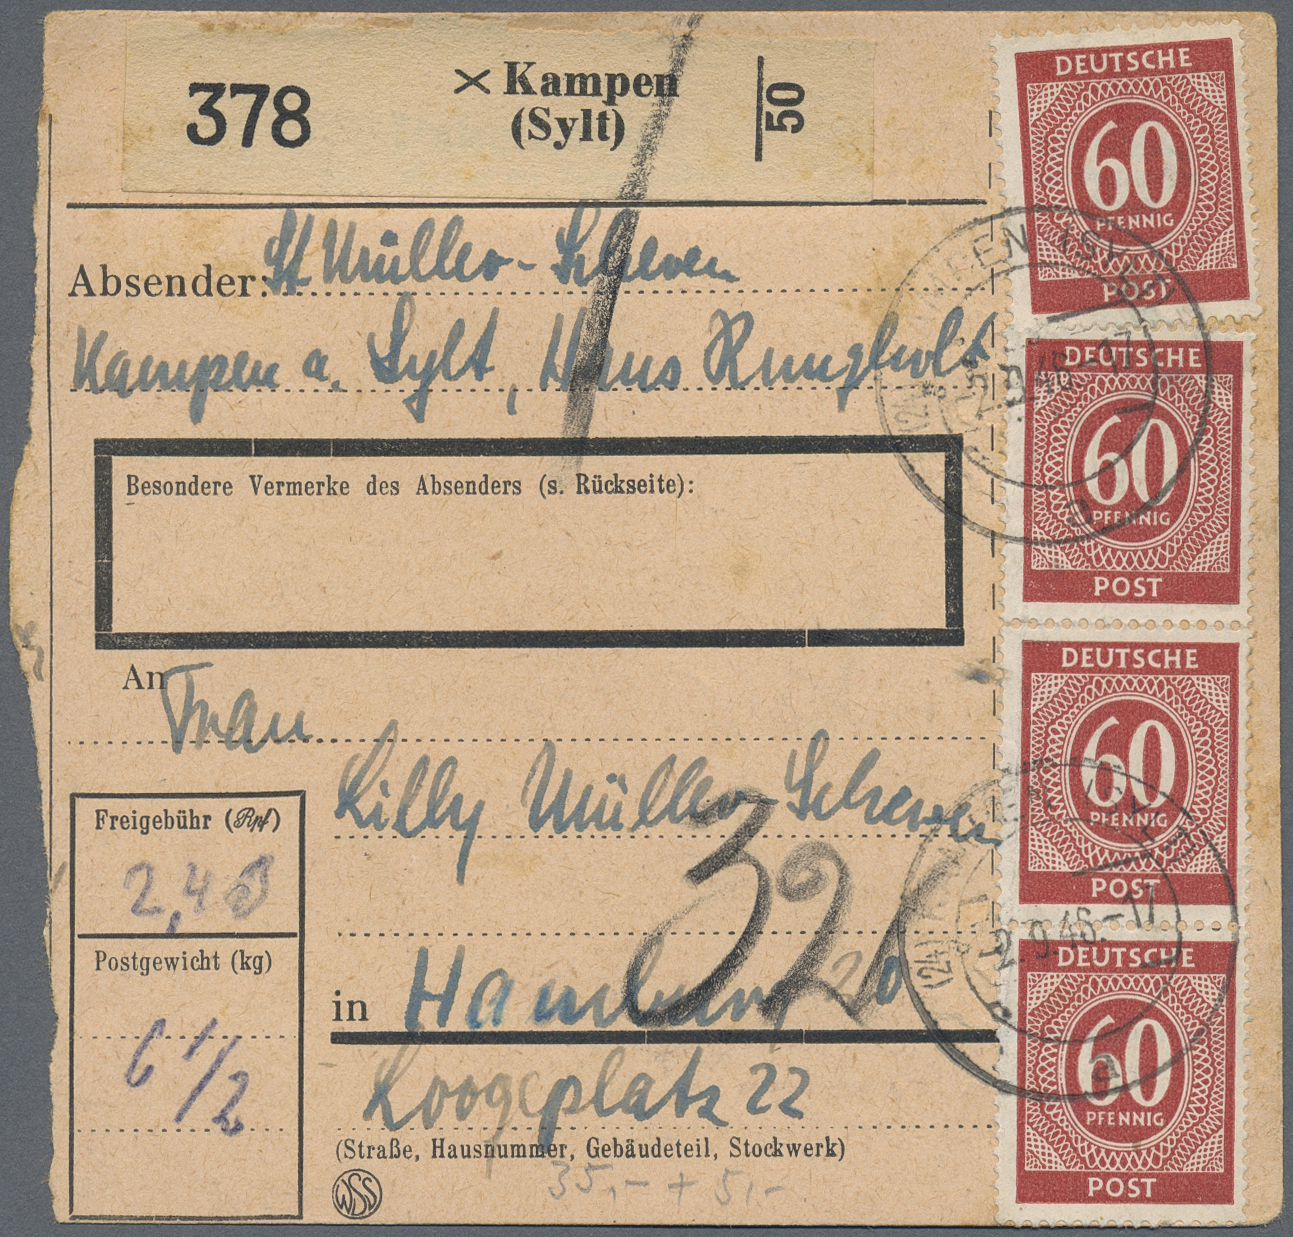 Lot 37895 - Alliierte Besetzung - Gemeinschaftsausgaben  -  Auktionshaus Christoph Gärtner GmbH & Co. KG Collections Germany,  Collections Supplement, Surprise boxes #39 Day 7